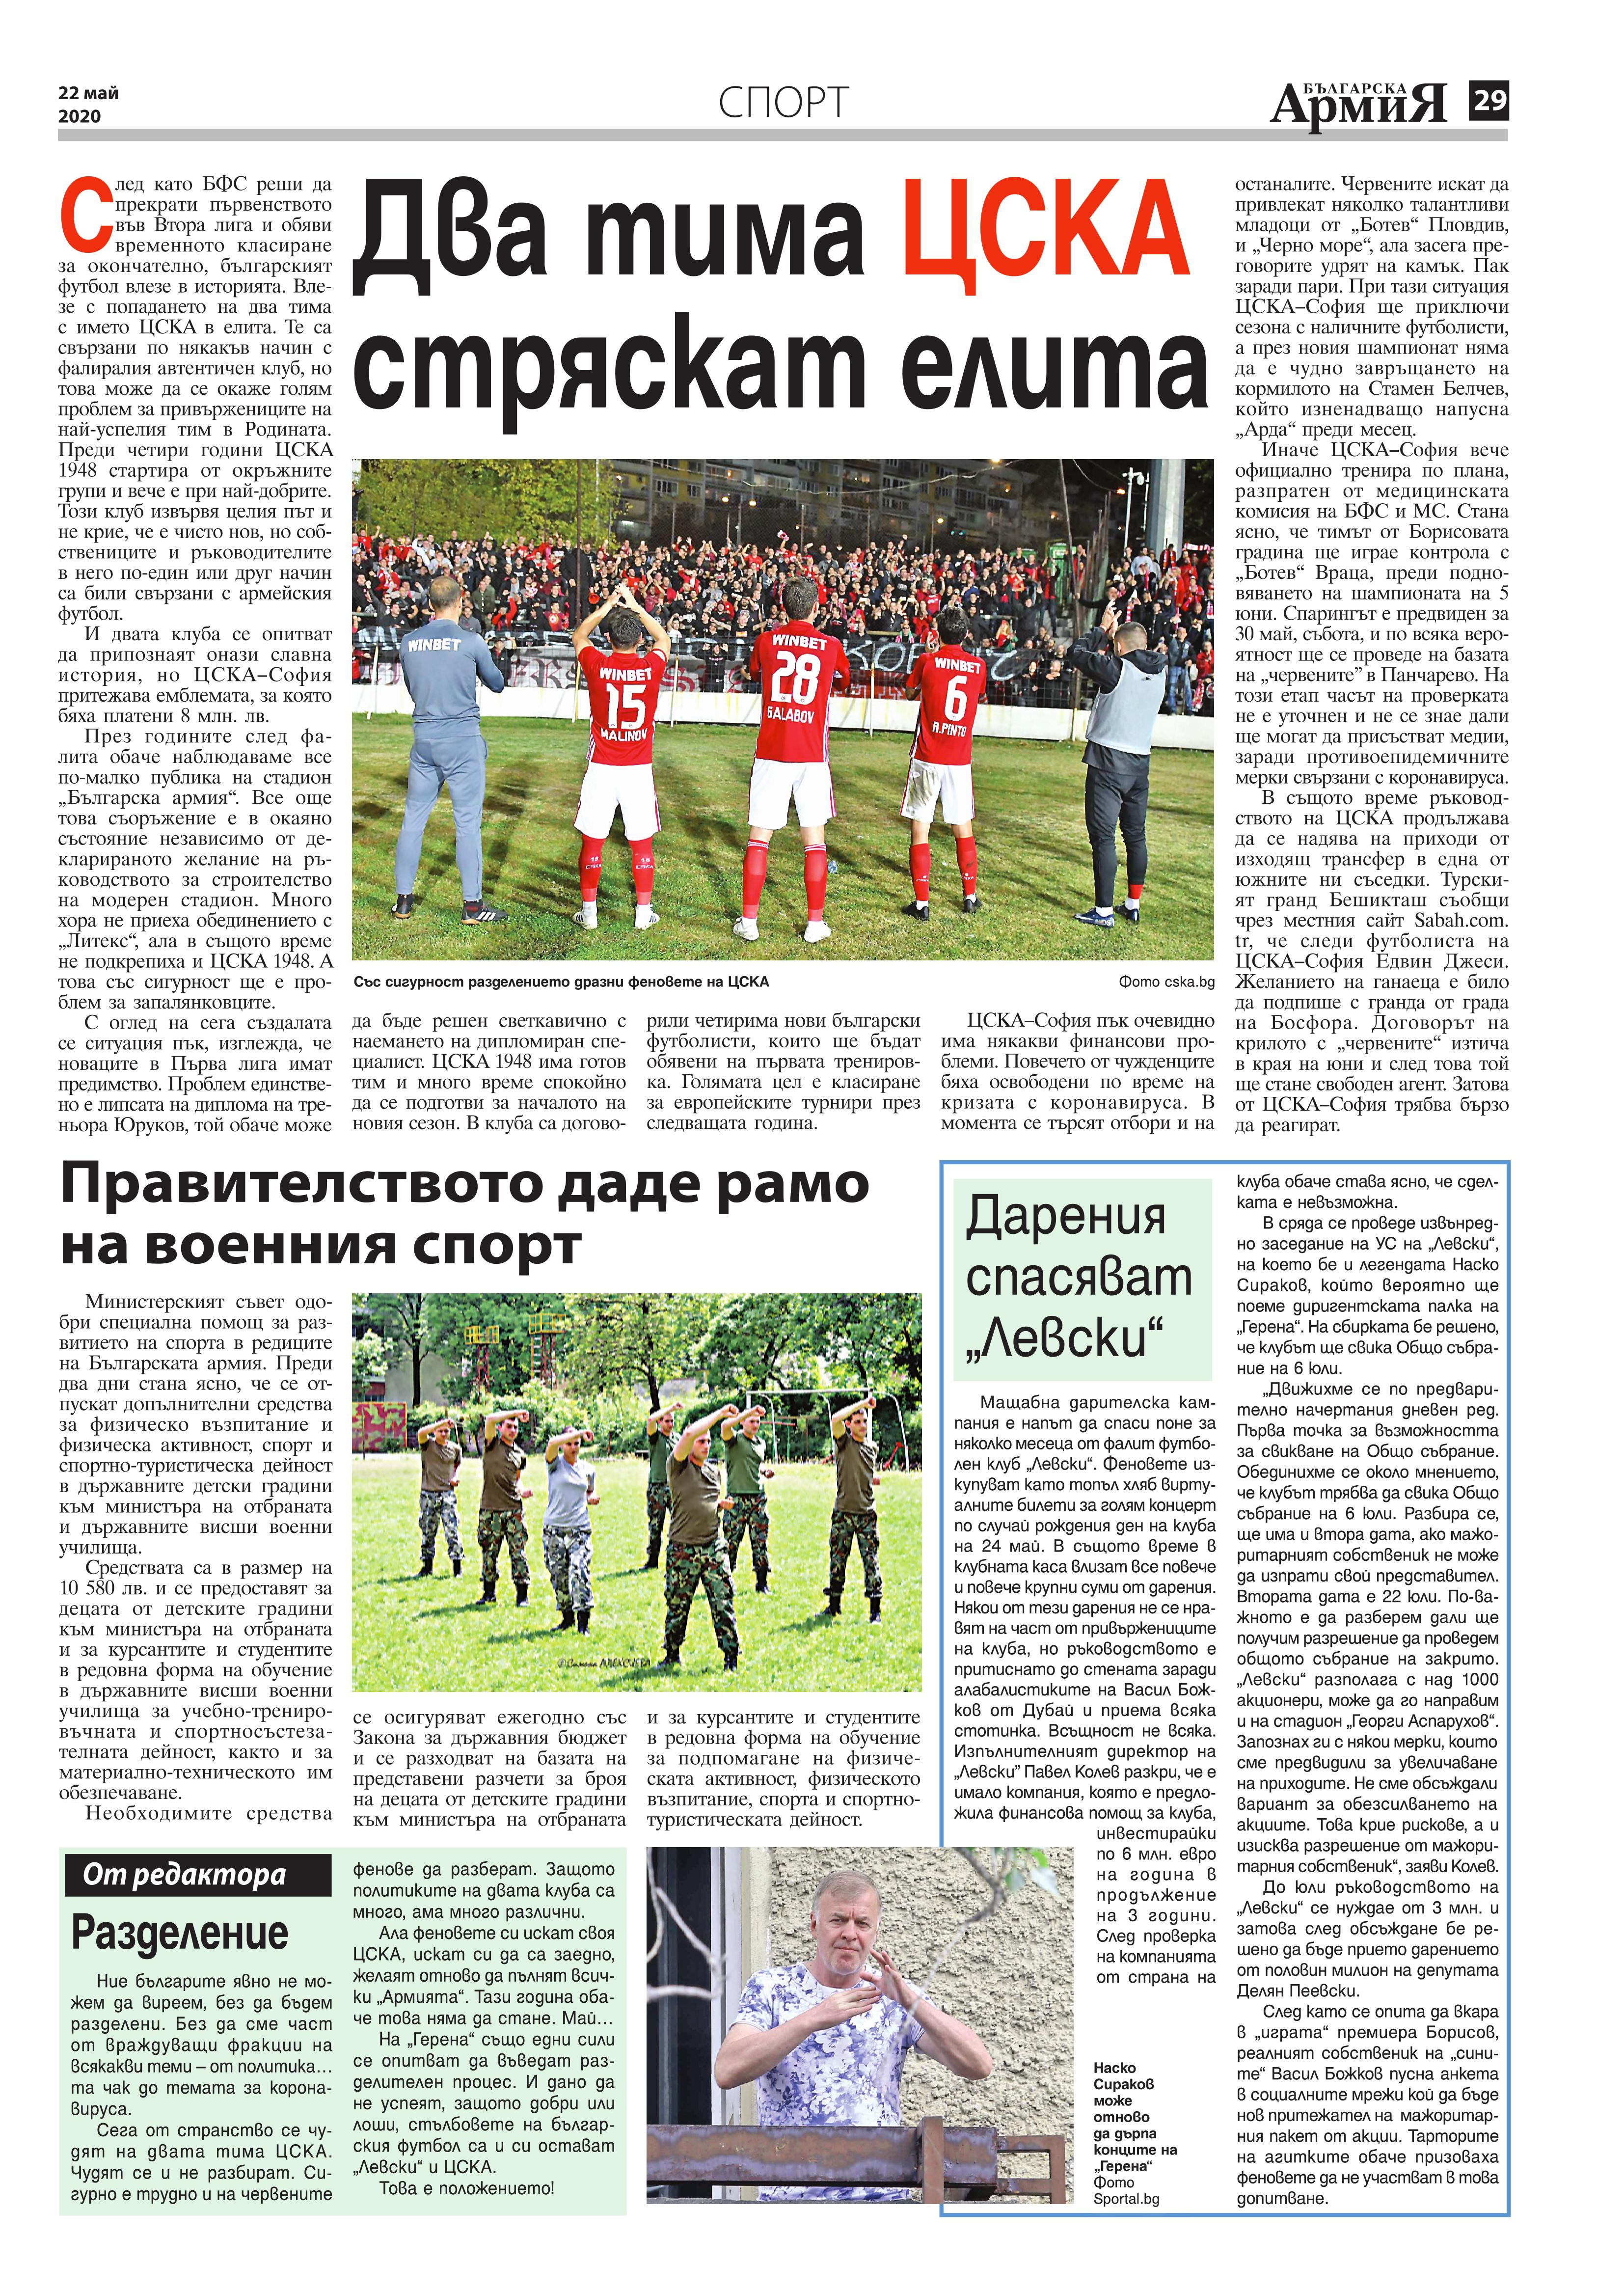 https://www.armymedia.bg/wp-content/uploads/2015/06/29.page1_-112.jpg